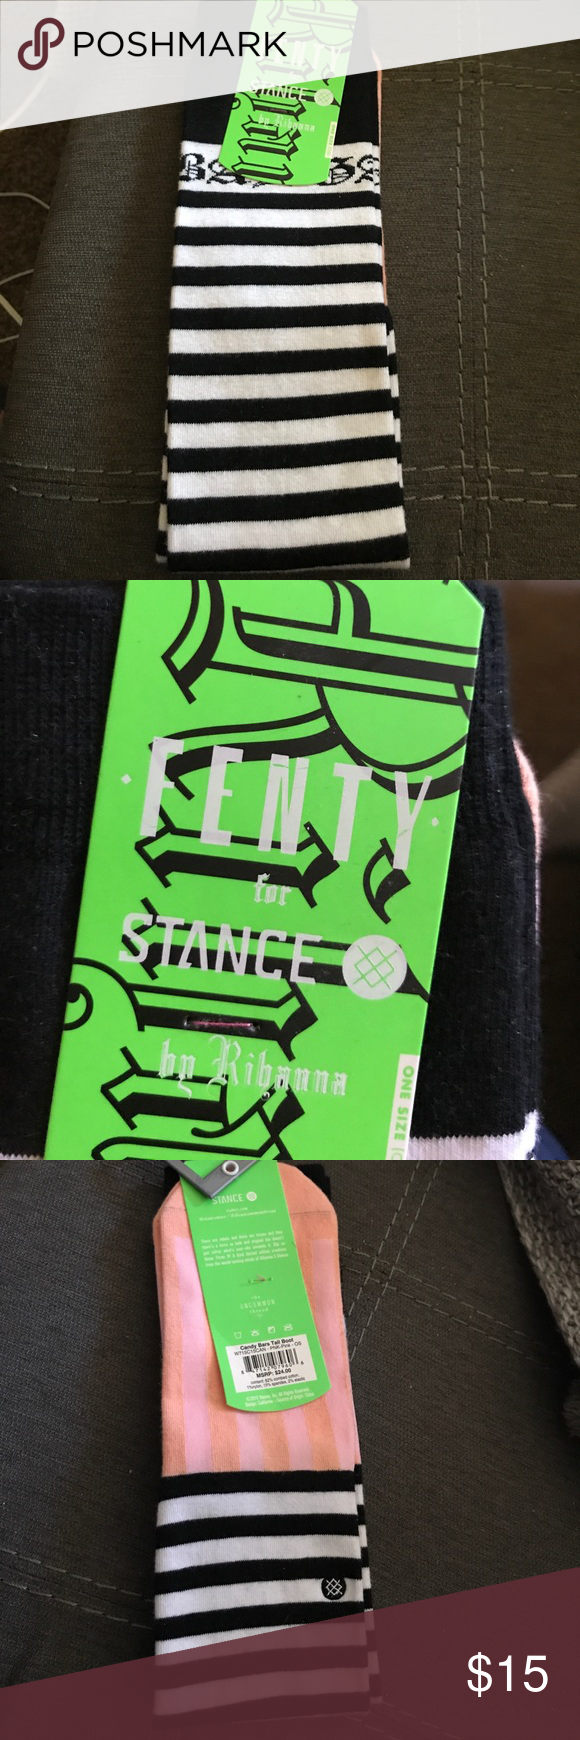 Stance socks This are stripped high knee socks. They have a pink foot and they are limited edition sock by Fenty for Stance Stance Other